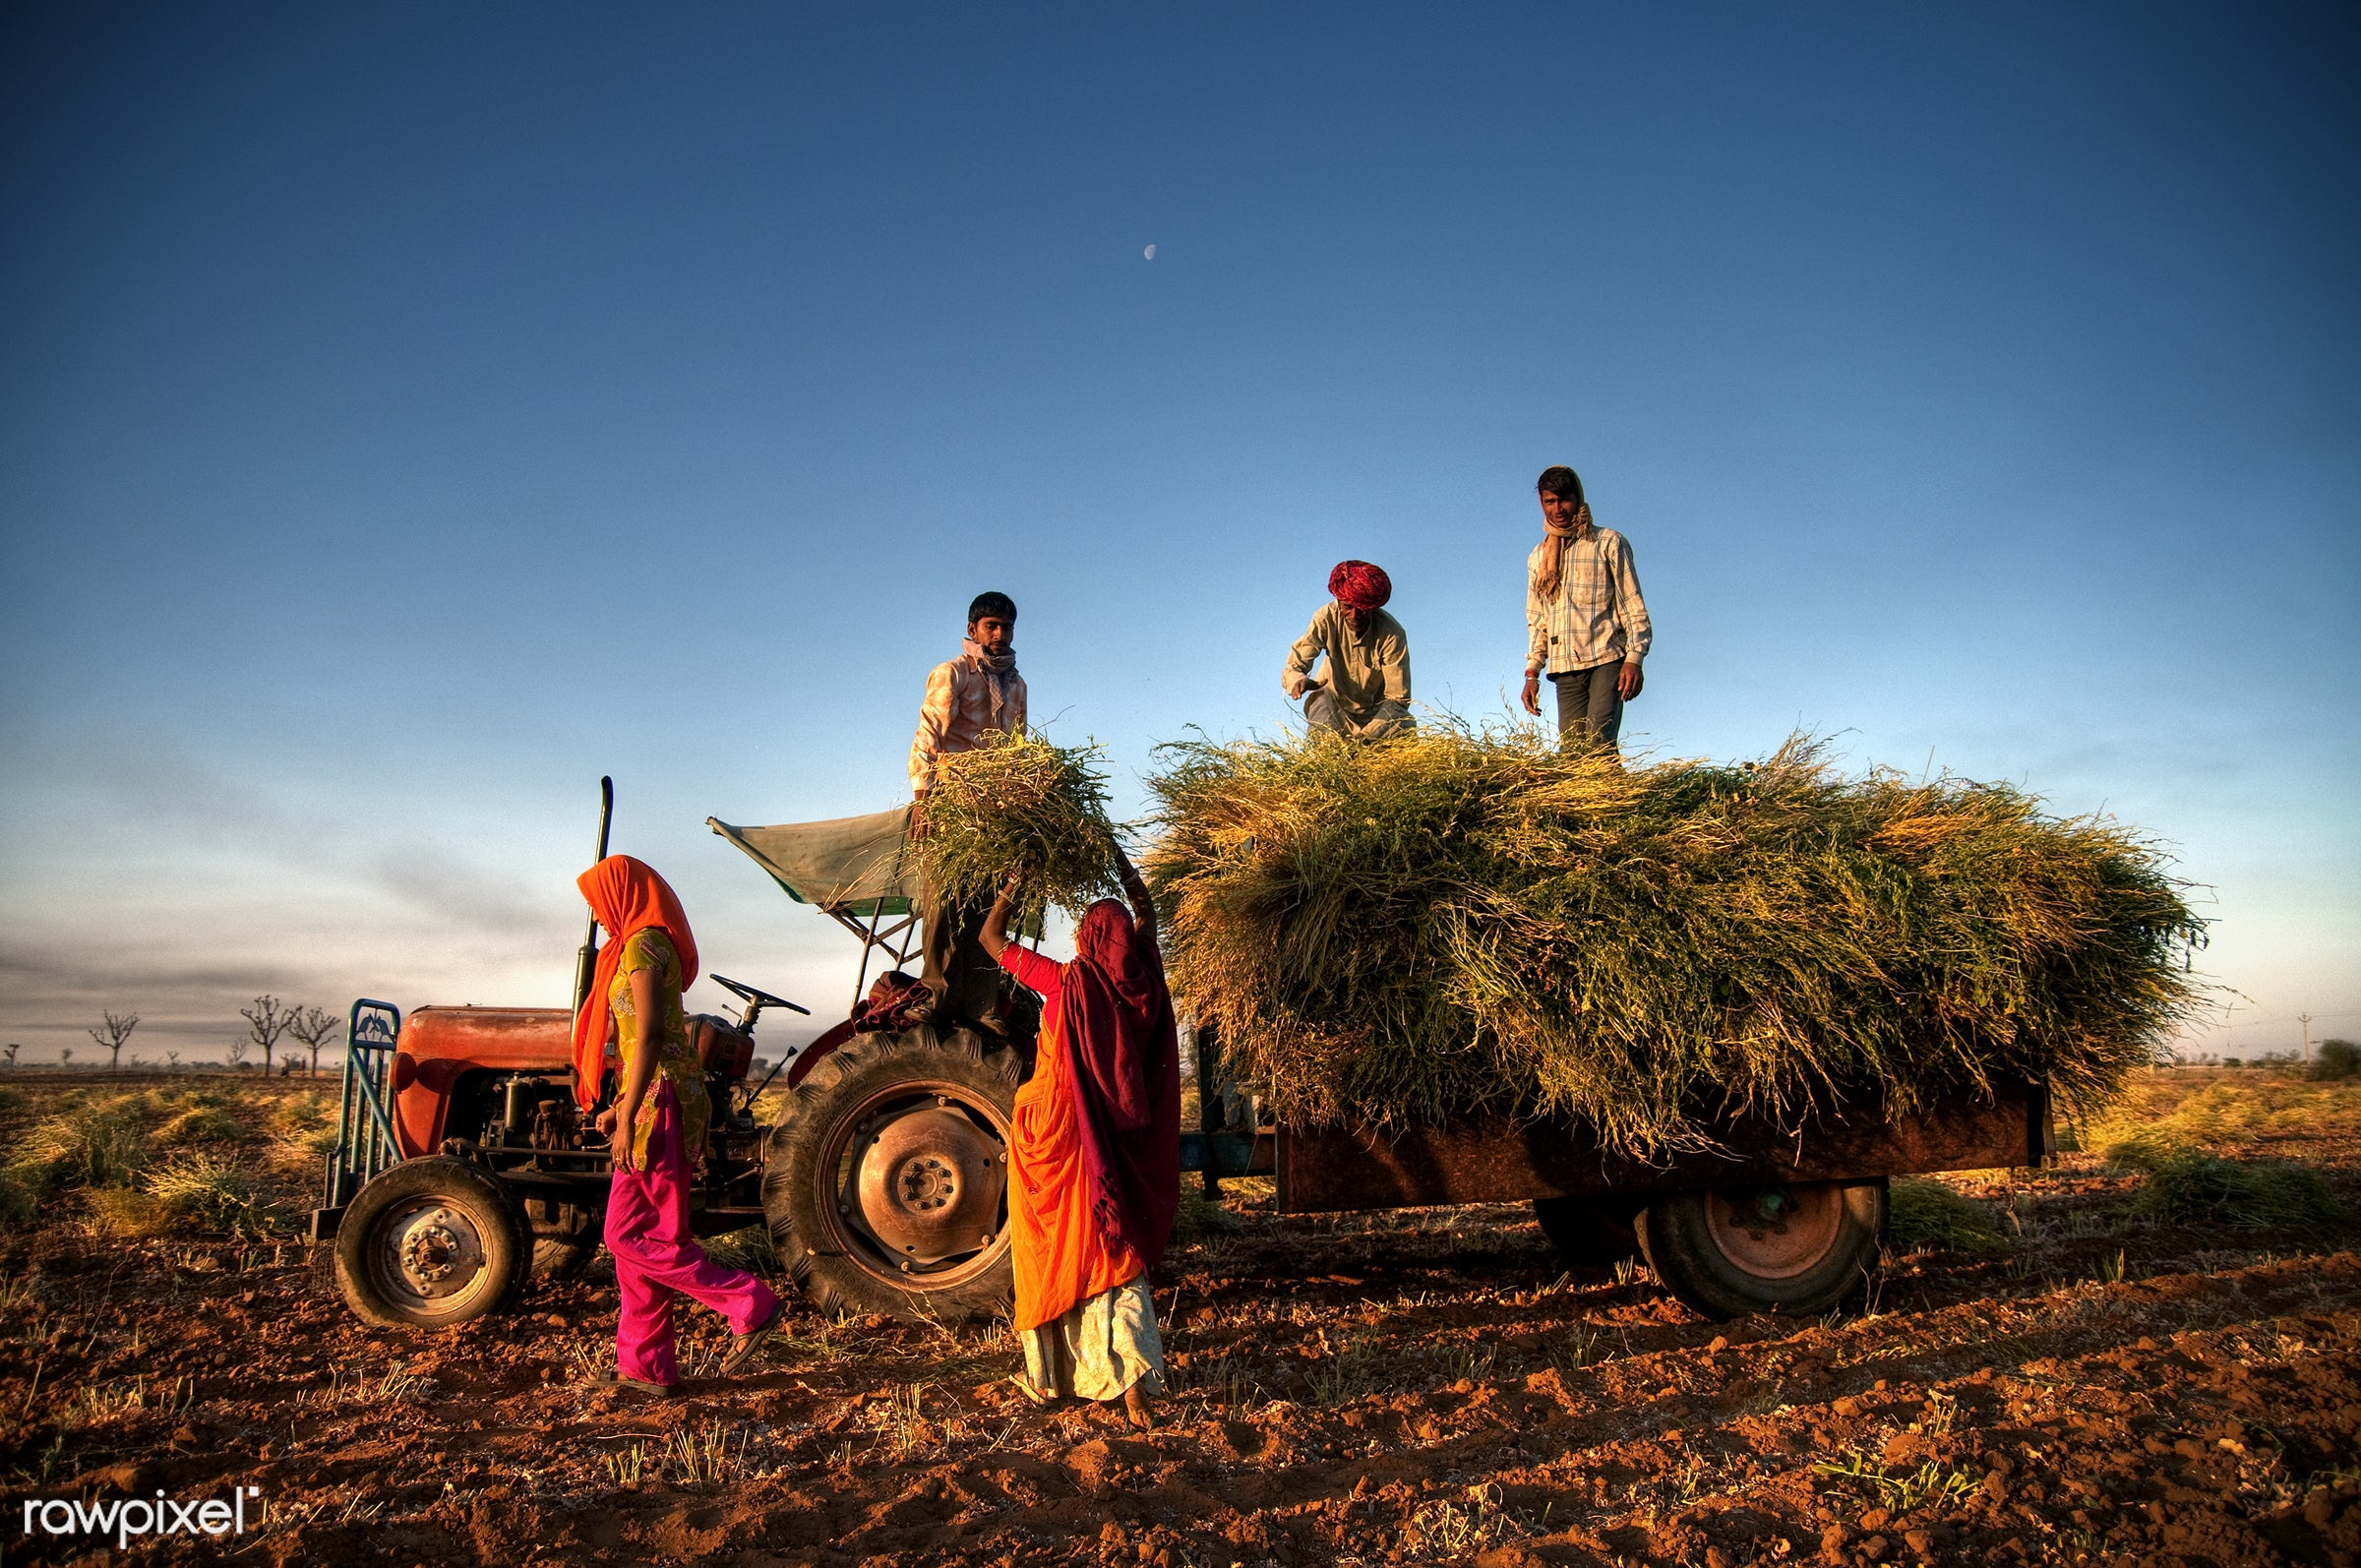 Family harvesting crops, near Jaipur, India - action, agriculture, asia, cereal plant, crop, dirt, earth, family, farm...